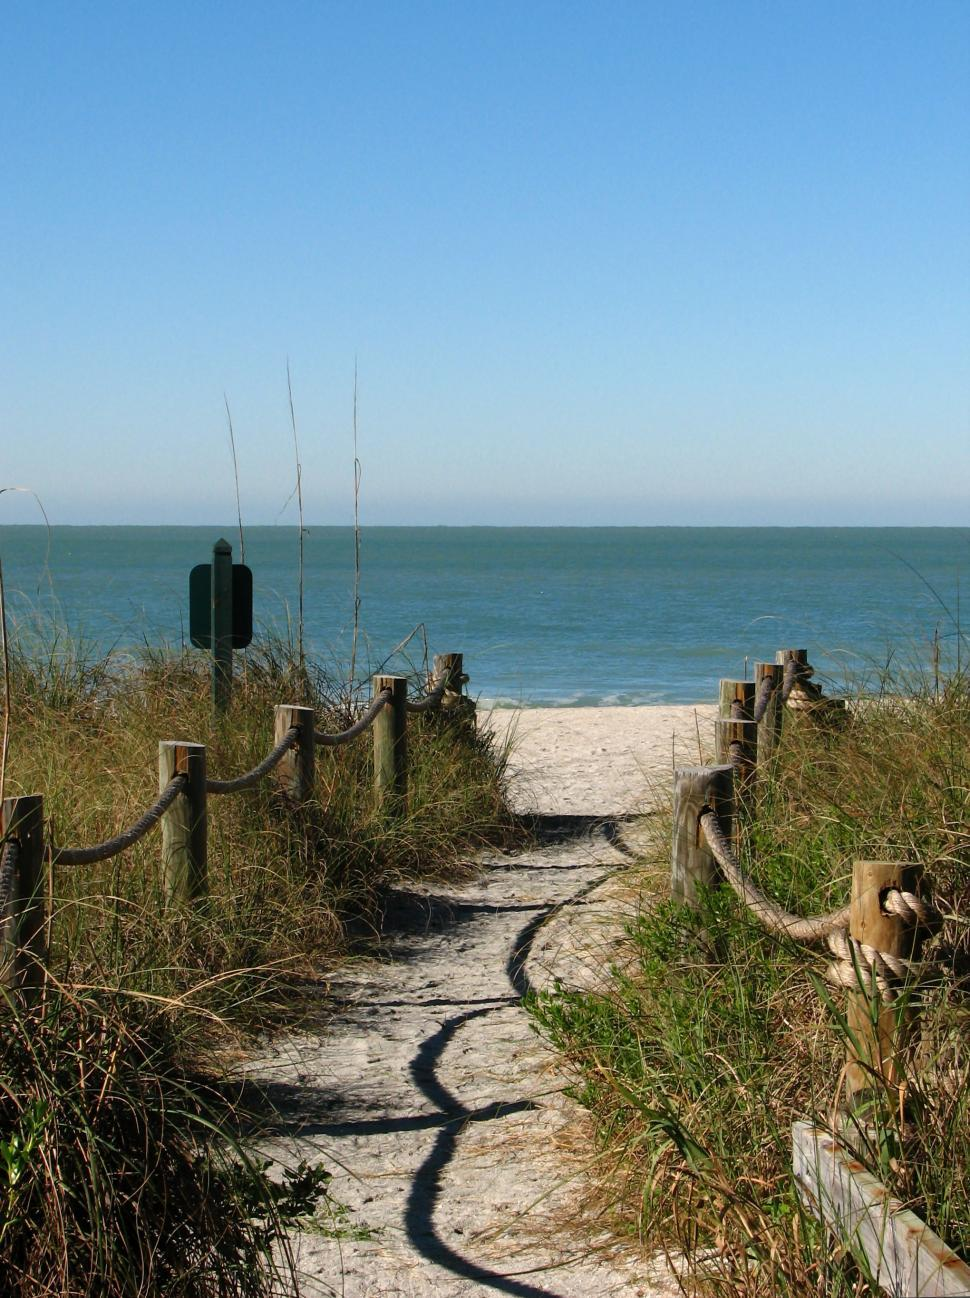 Download Free Stock Photo of A path heading to the beach